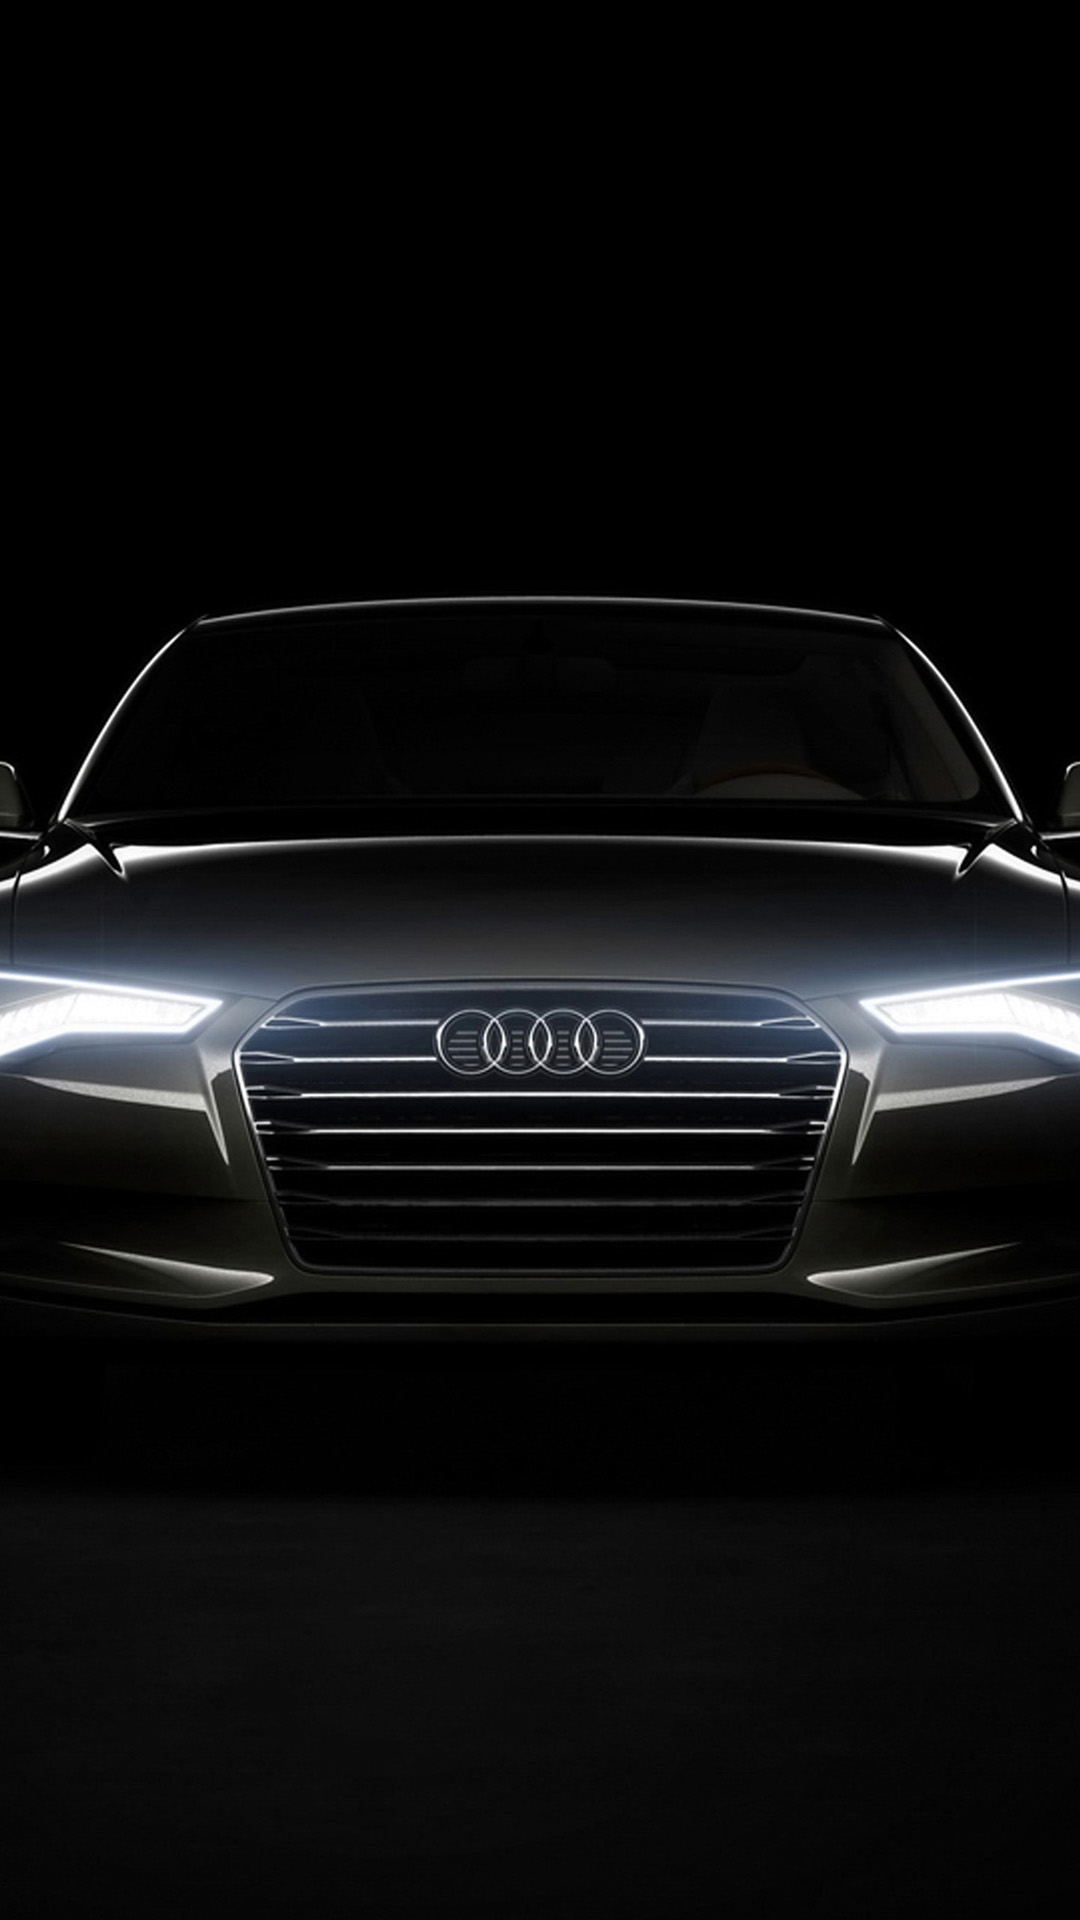 Audi a7 sportback 2 HD Wallpaper iPhone 6 plus wallpapersmobilenet